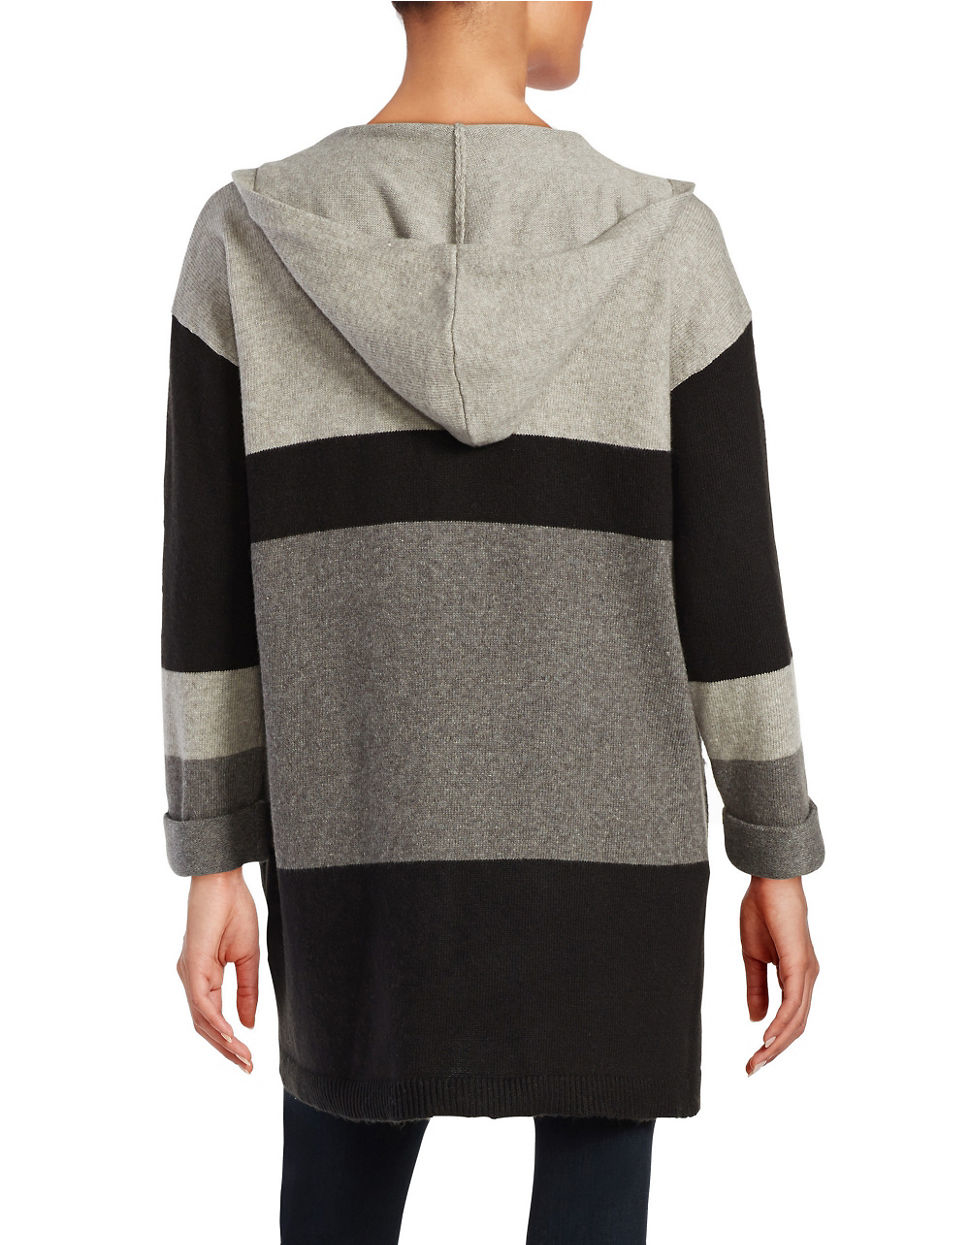 Vince camuto Petite Hooded Colorblocked Sweater in Black | Lyst